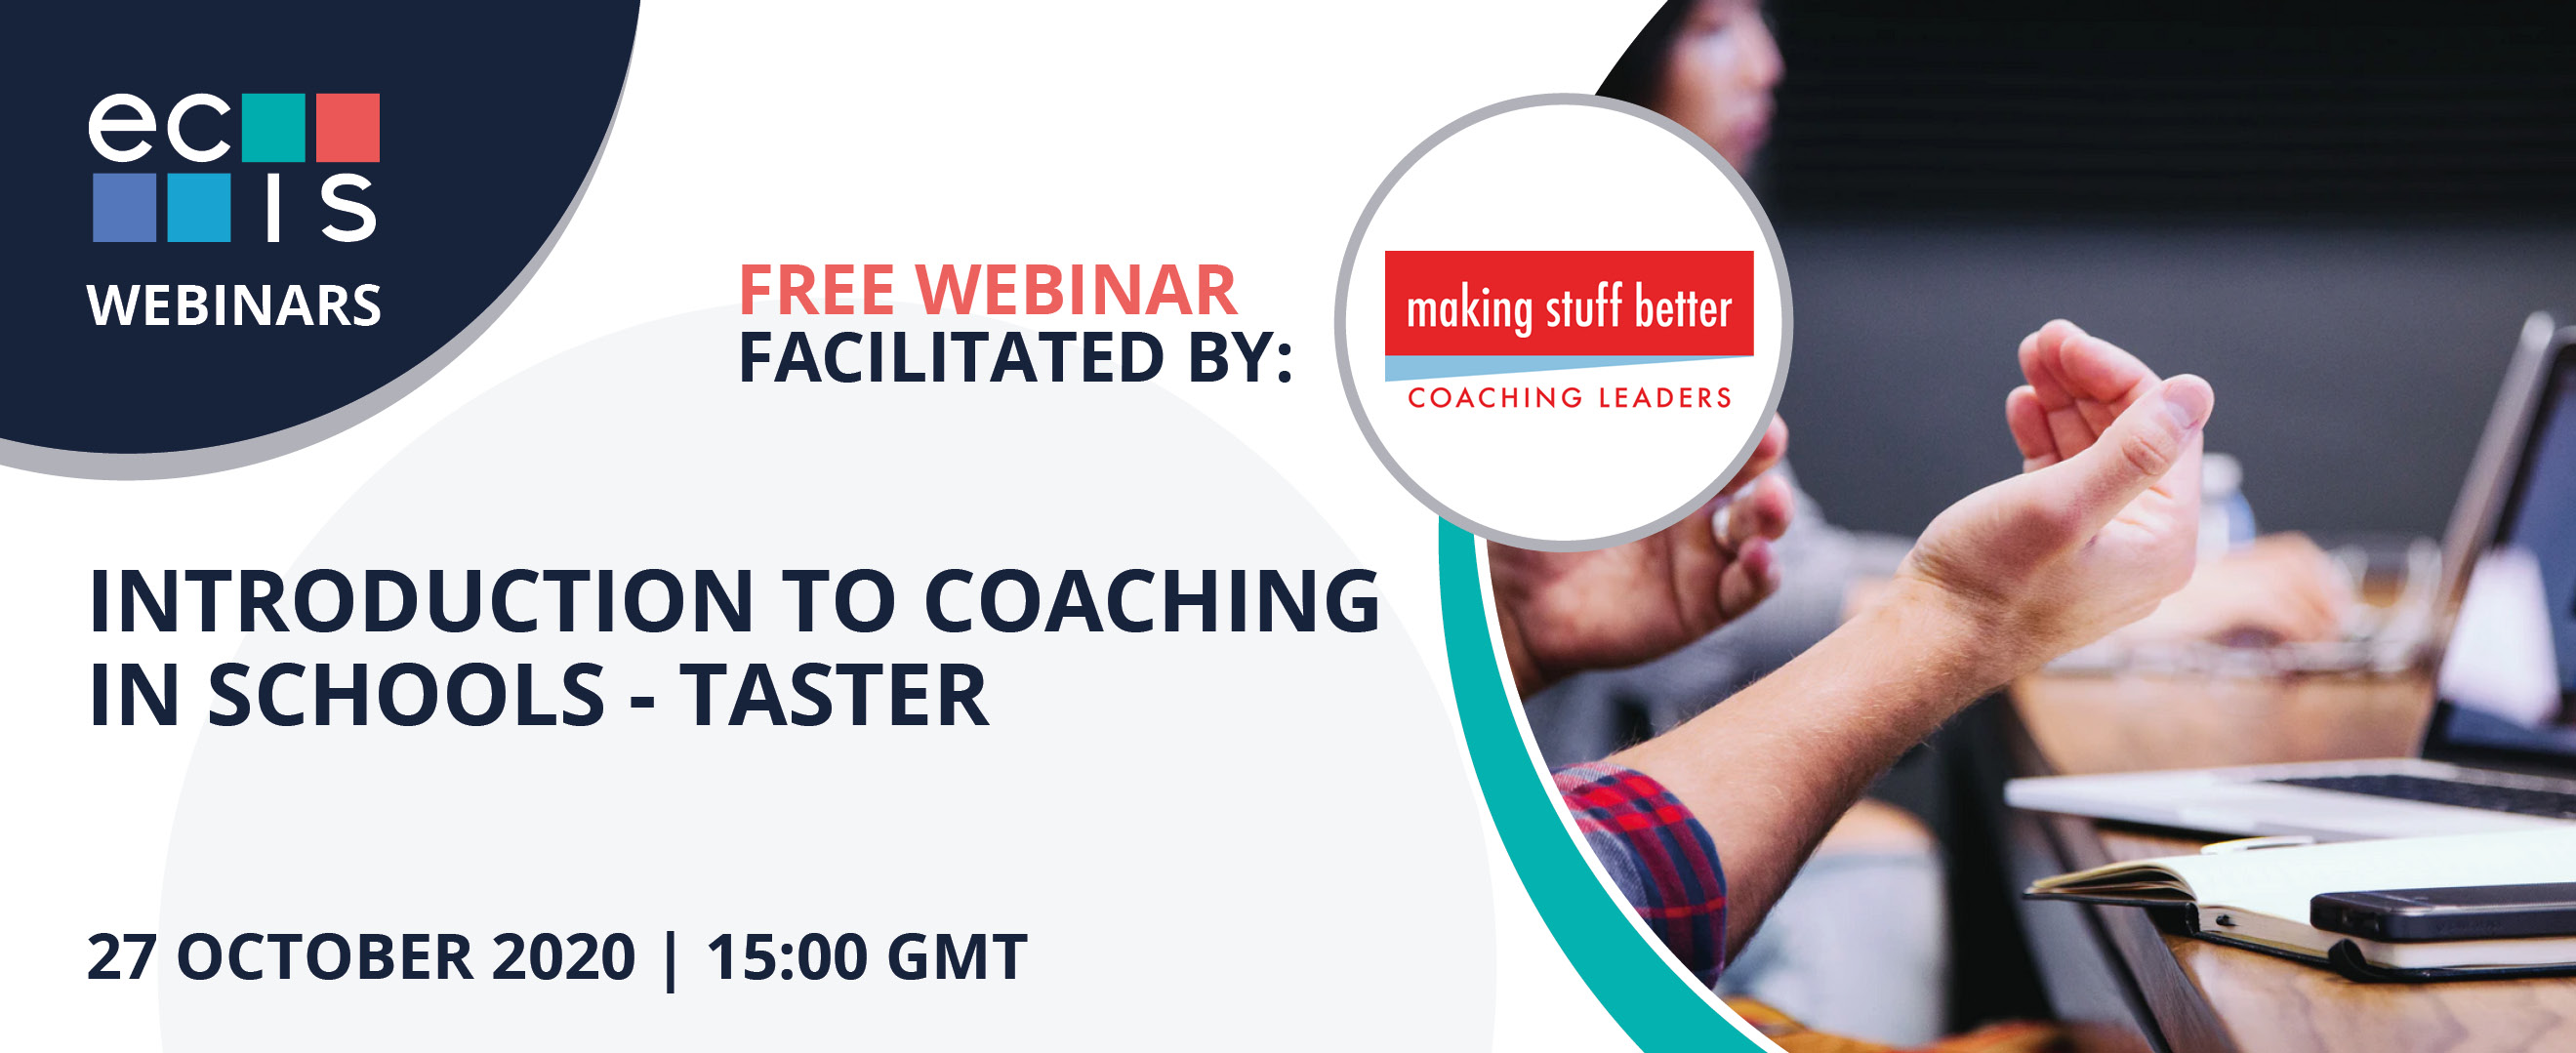 Webinar: Introduction to Coaching in Schools - Taster